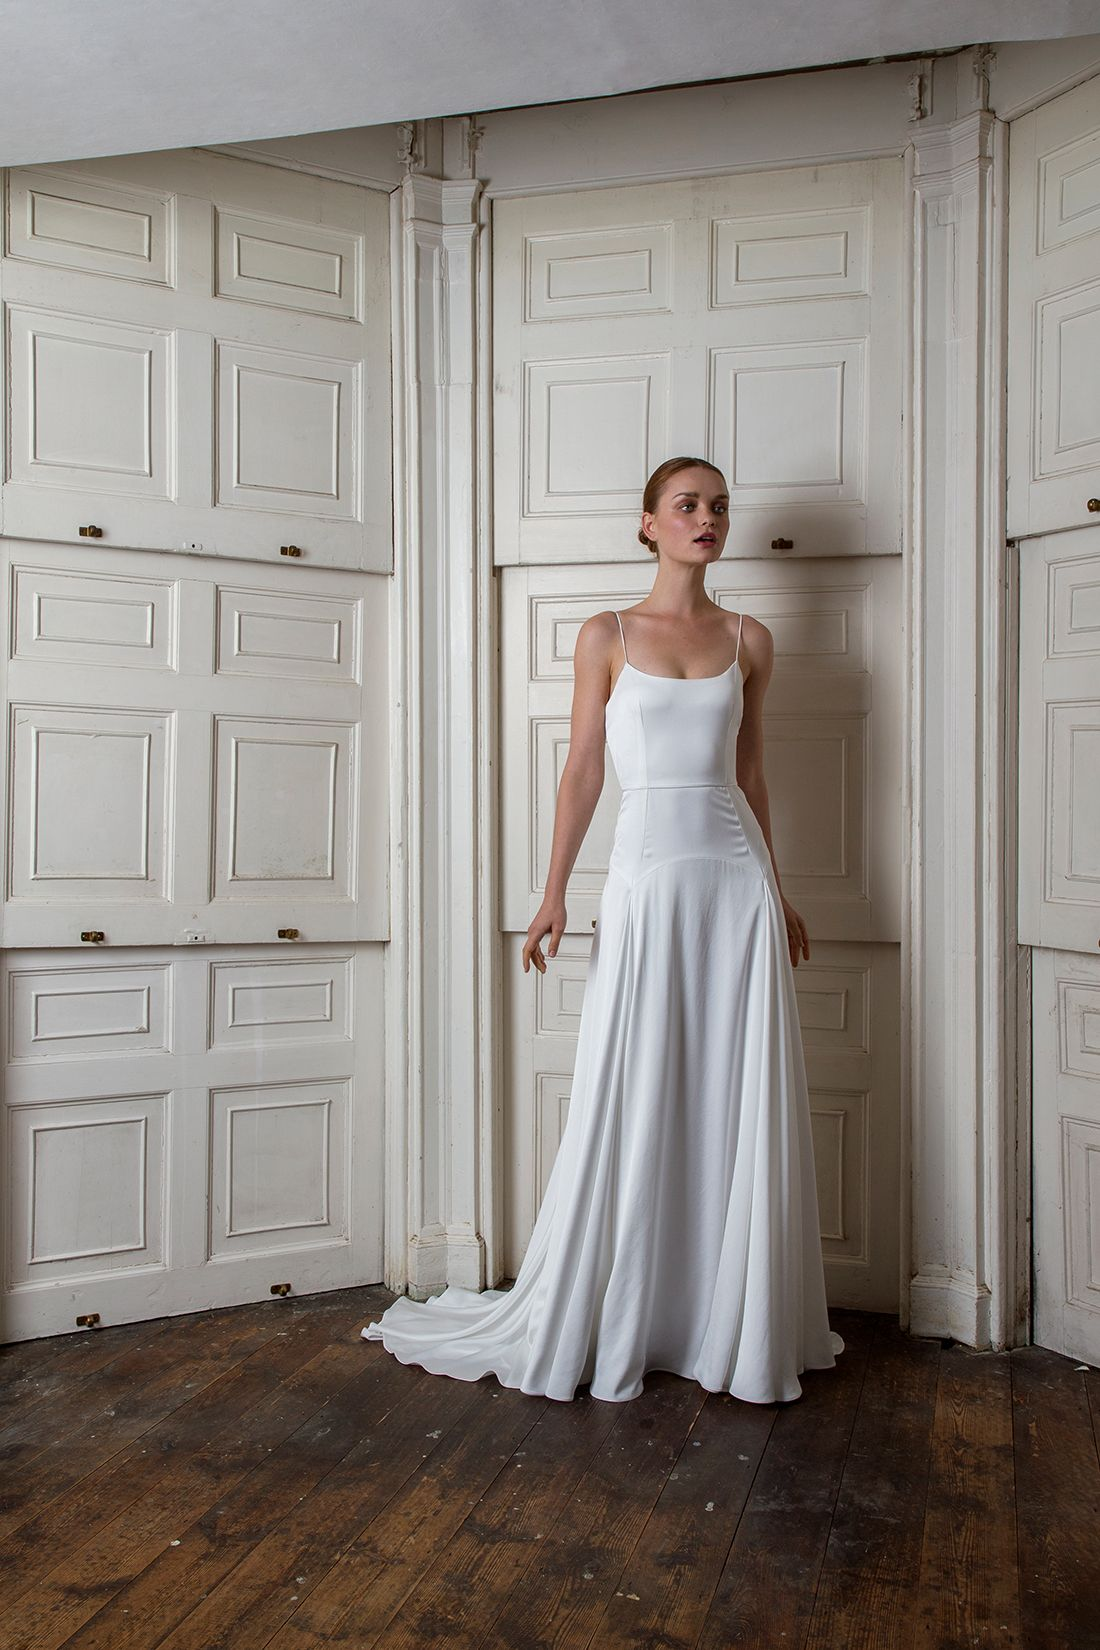 Simple Wedding Dresses That Are Just Plain Chic Minimalist Wedding Dresses Plain Wedding Dress Bridal Fashion Week [ 1650 x 1100 Pixel ]